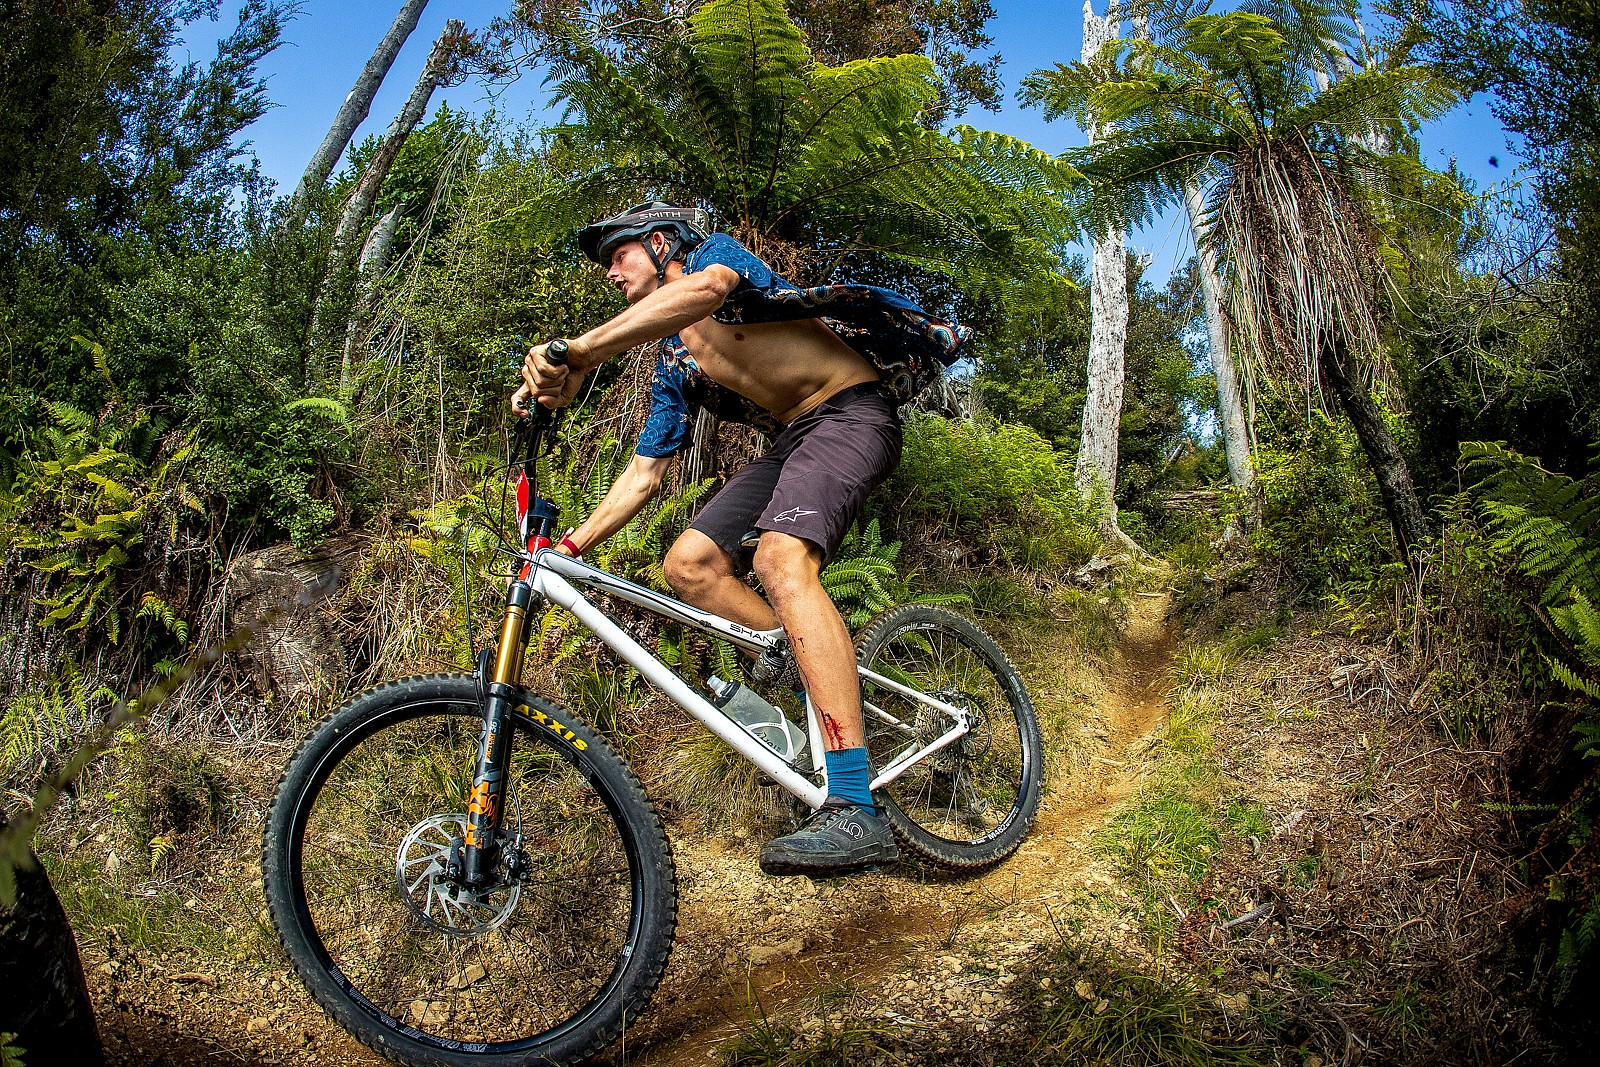 The Last MTB Race For a While? Mammoth Enduro, Nelson, New Zealand - Mammoth Enduro, Nelson, New Zealand - Race Report - Mountain Biking Pictures - Vital MTB